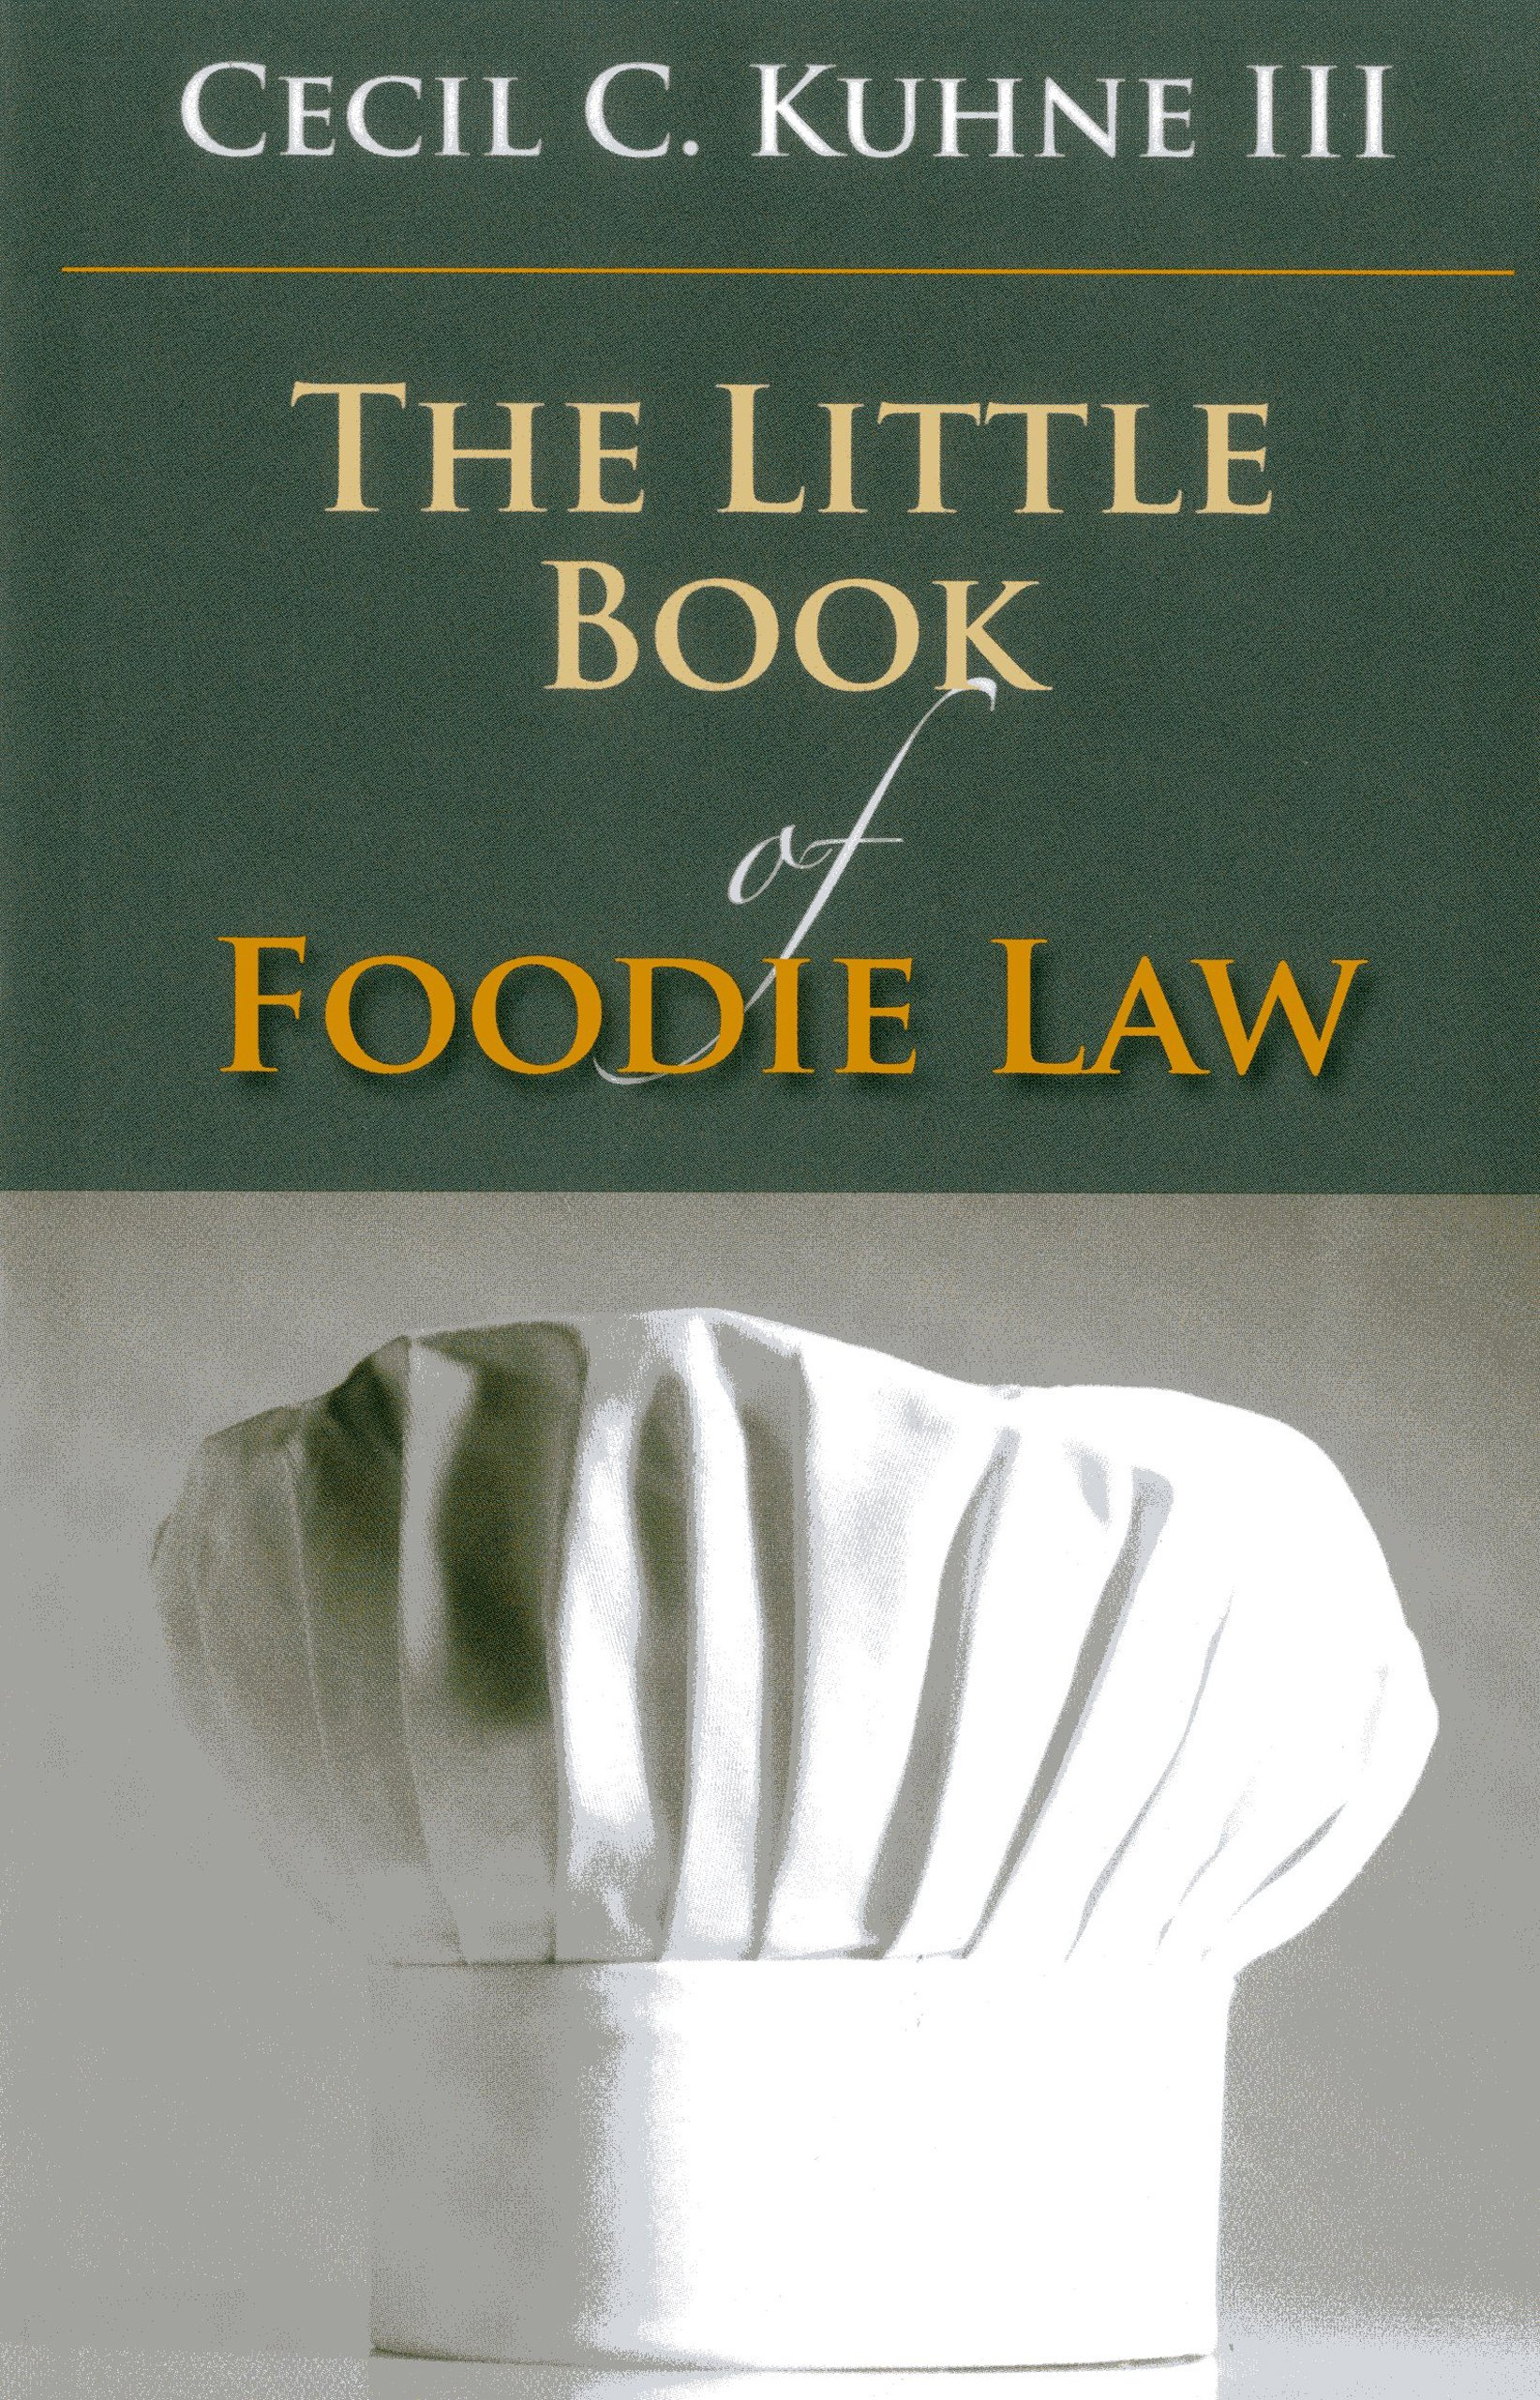 Download The Little Book of Foodie Law (ABA Little Books Series) pdf